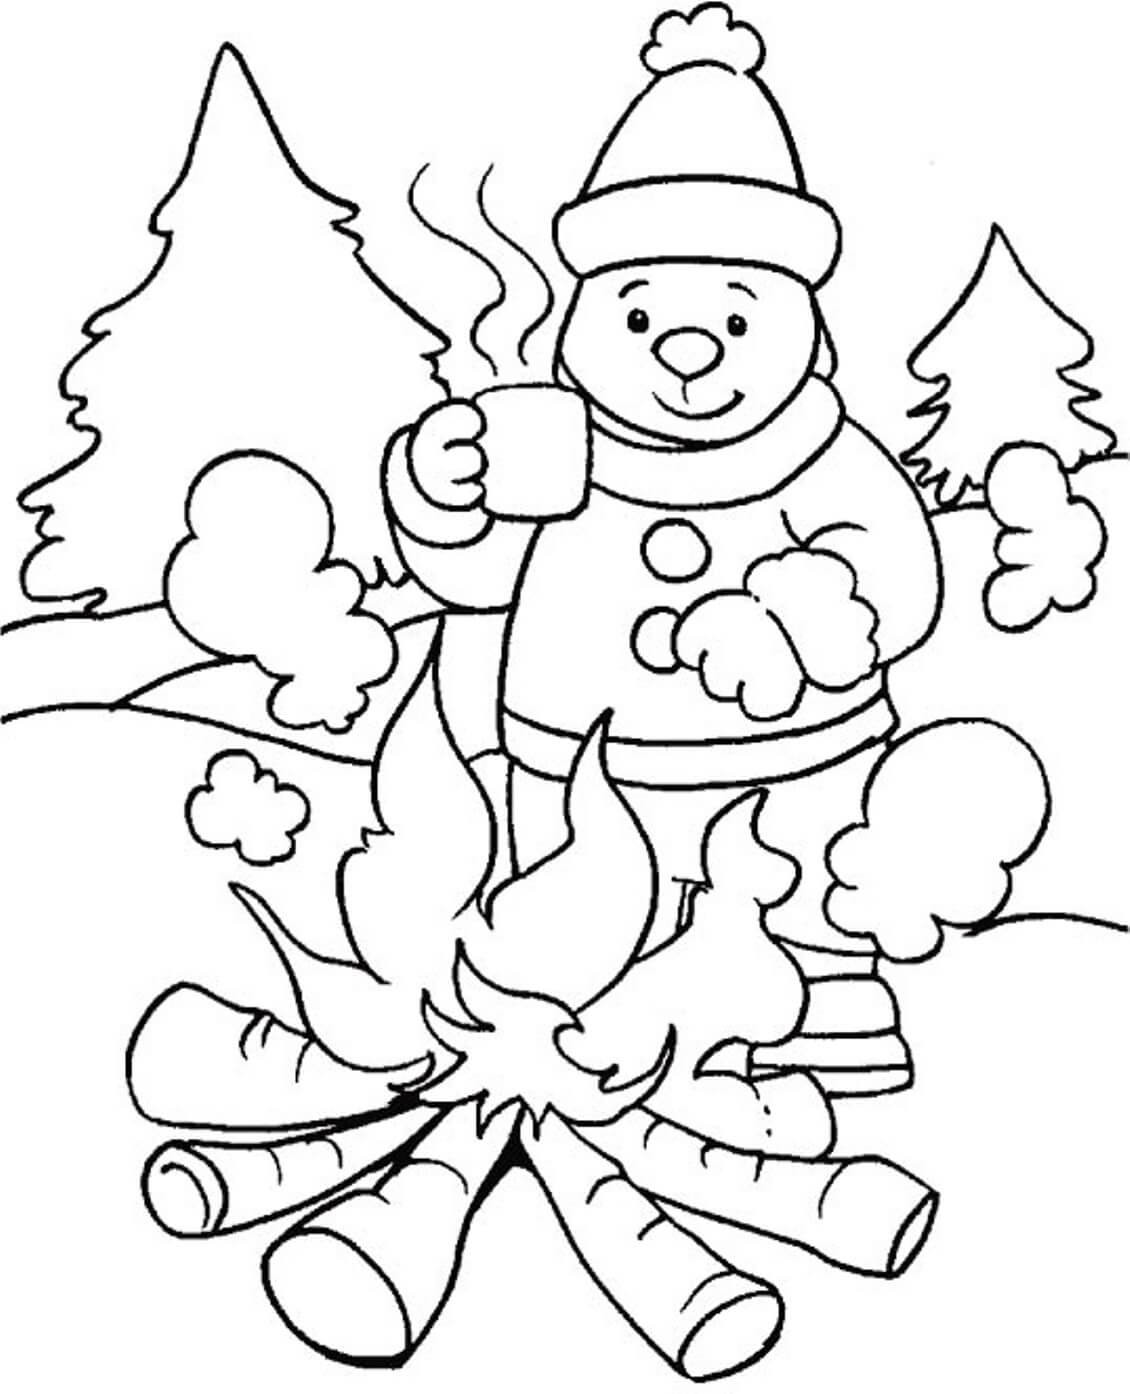 Free Winter Printable Coloring Pages  Free Printable Winter Coloring Pages